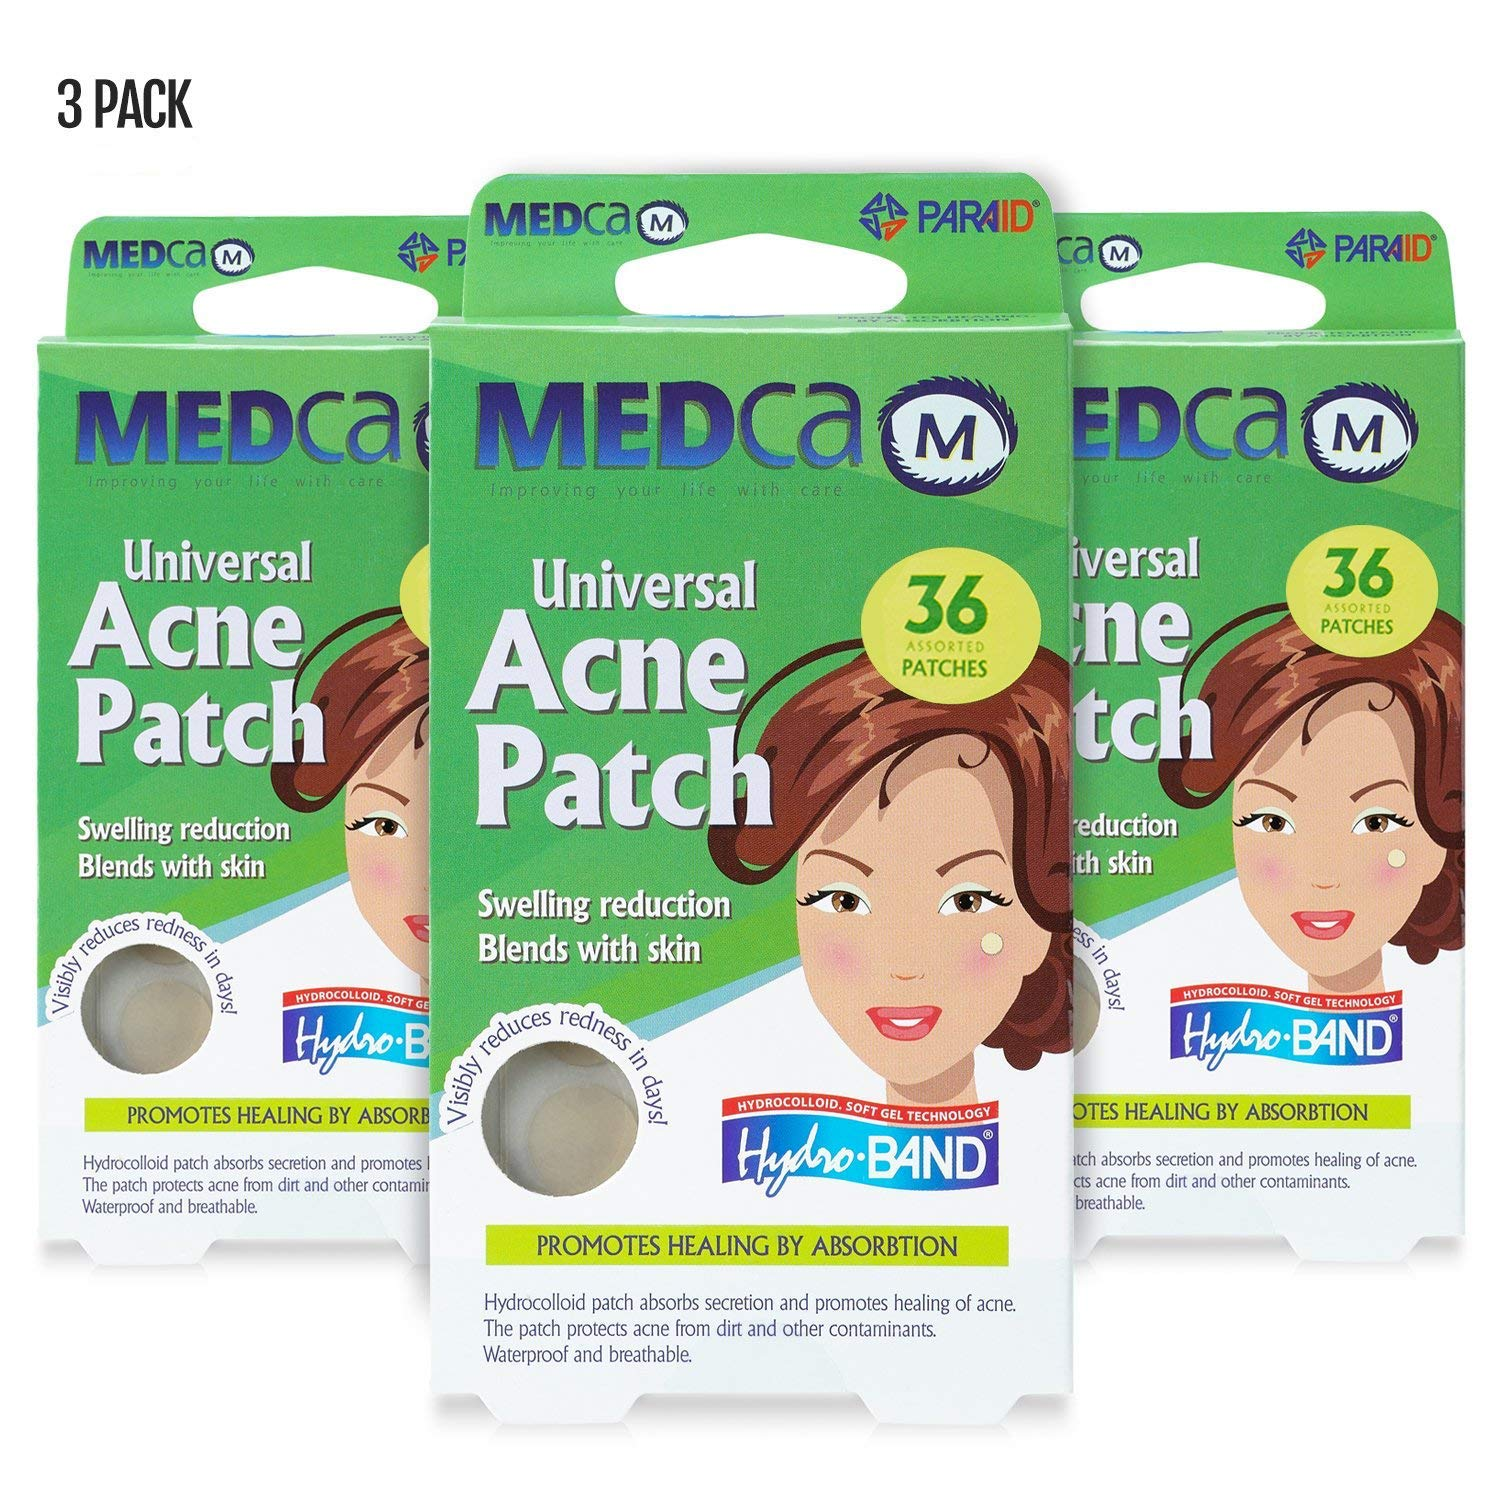 Acne Care Pimple Patch Absorbing Cover - Hydrocolloid Bandages (108 Count) Two Universal Sizes, Acne Spot Treatment for Face & Skin Spot Patch That Conceals Acne, Reduces Pimples and Blackheads by MEDca